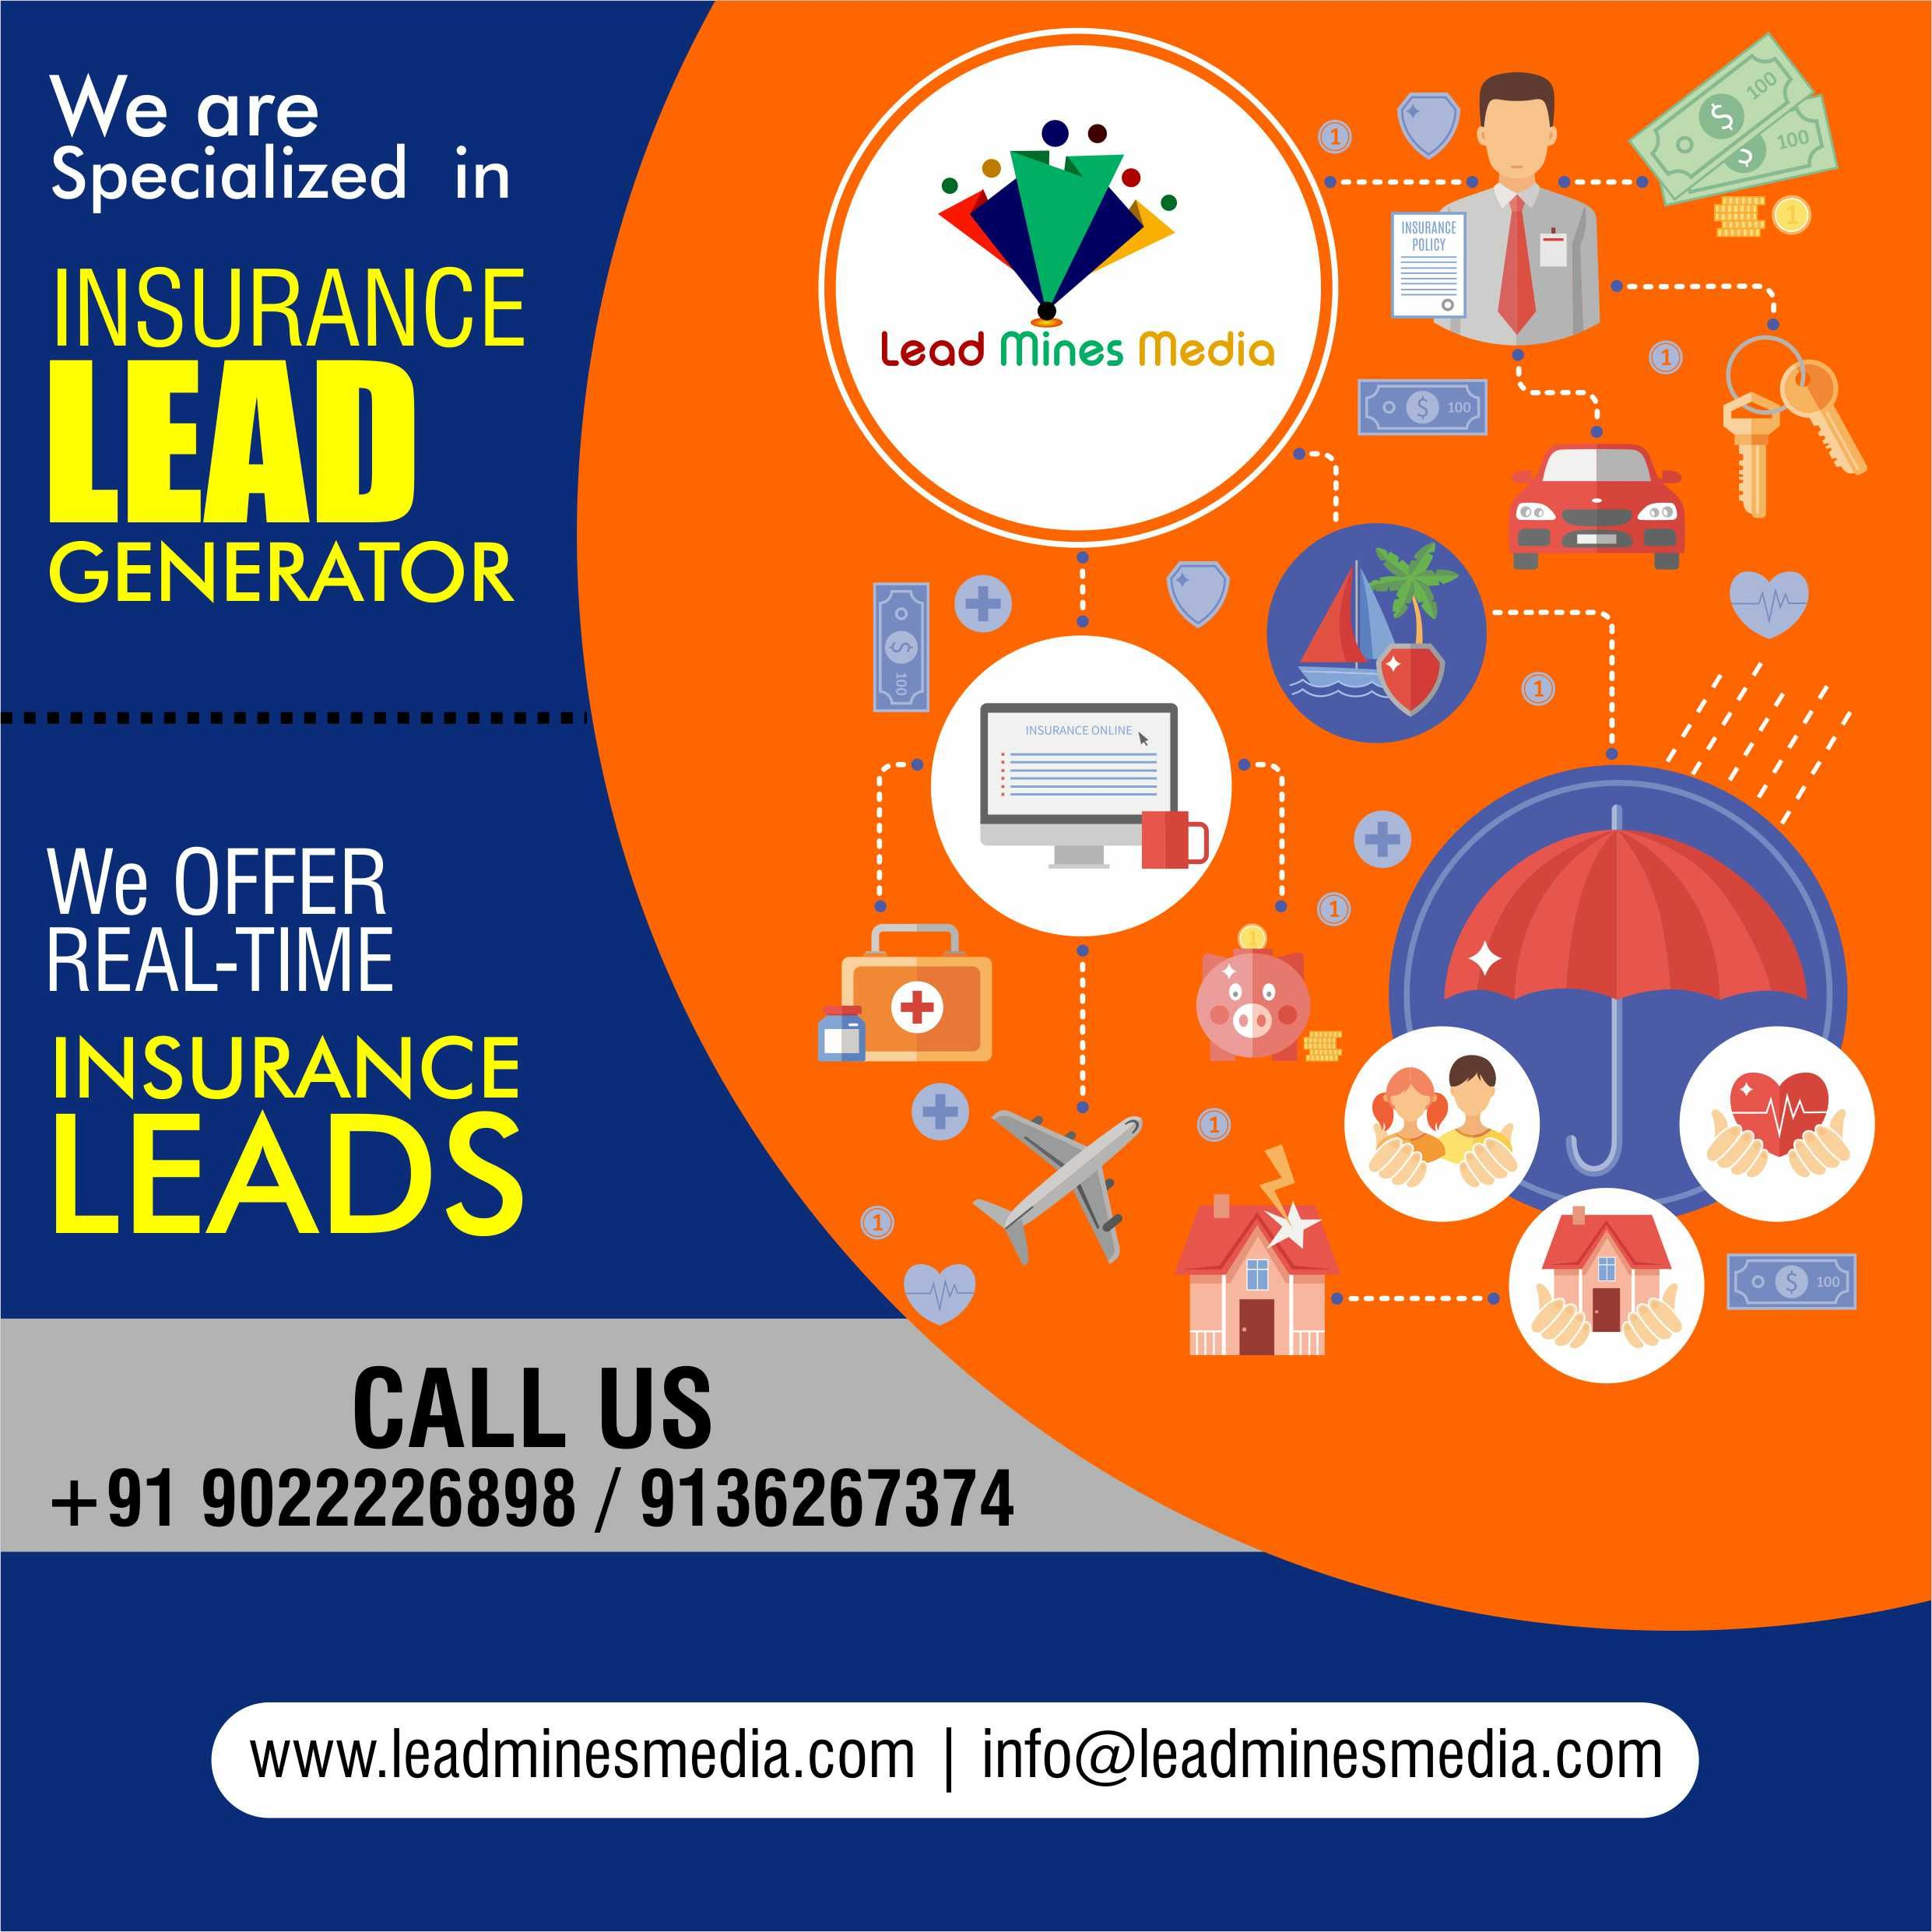 We Are Specialized In Insurance Lead Generator Lead Generation